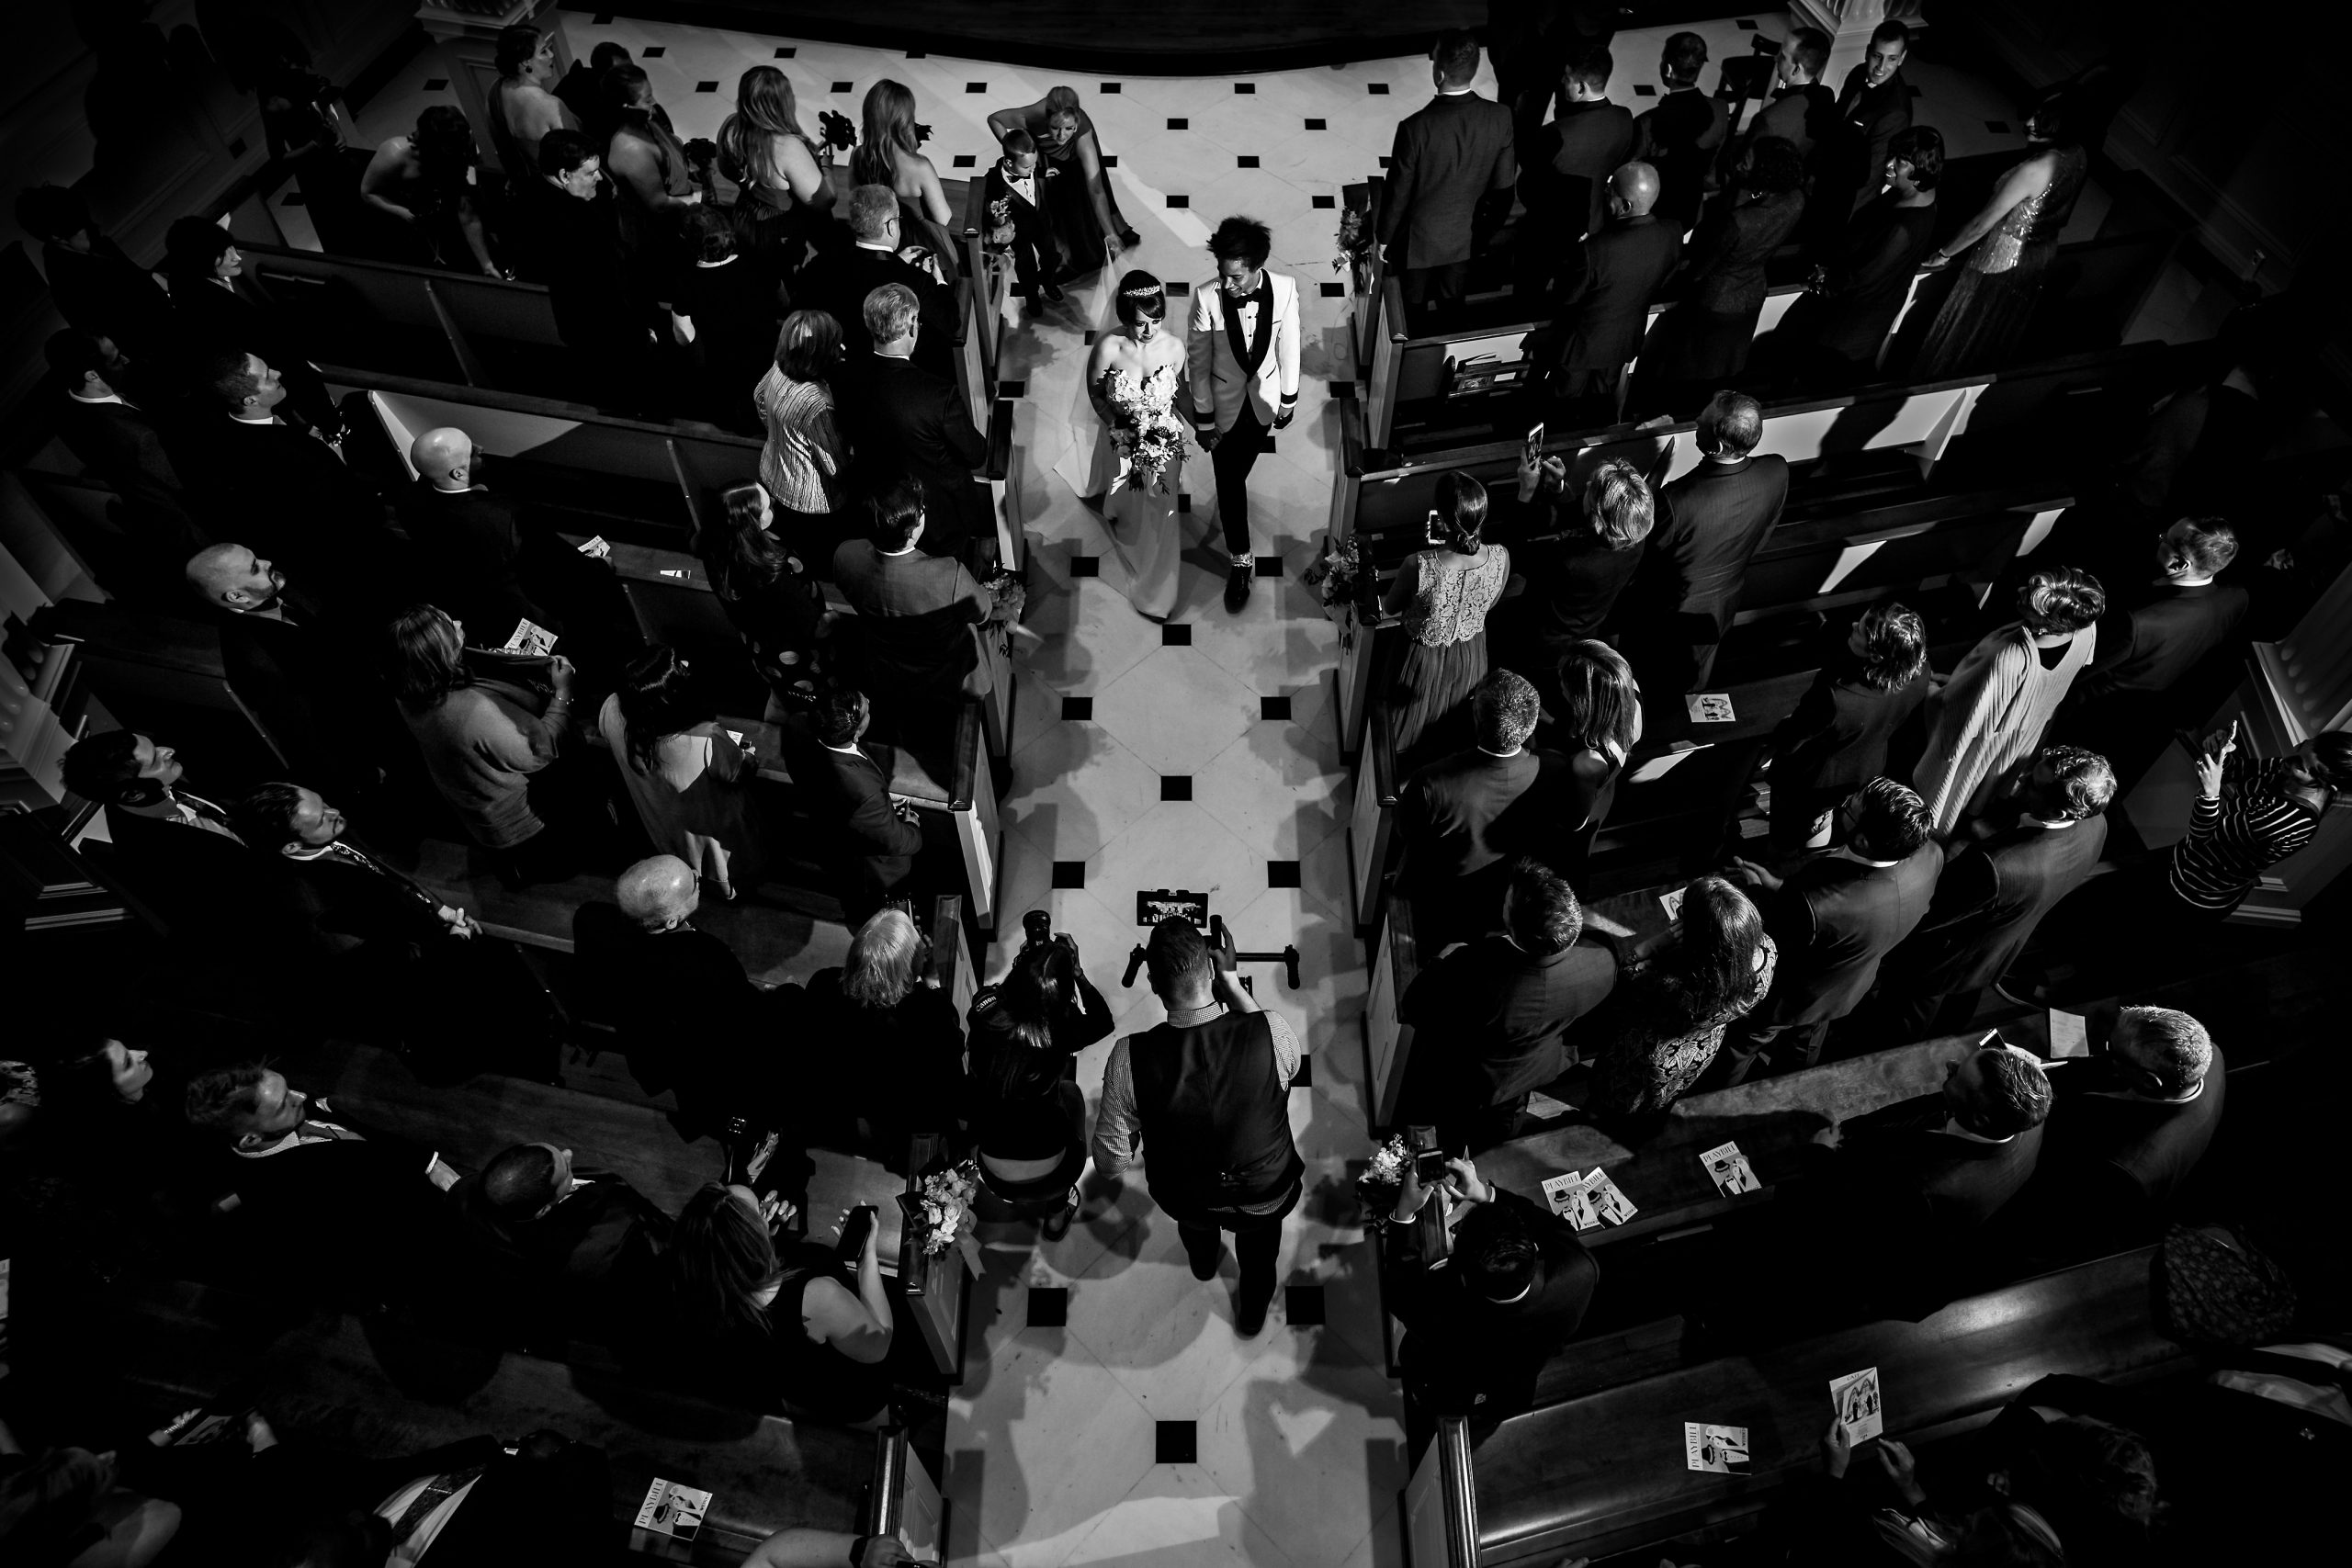 Bird's eye view of bride and groom walking down the aisle